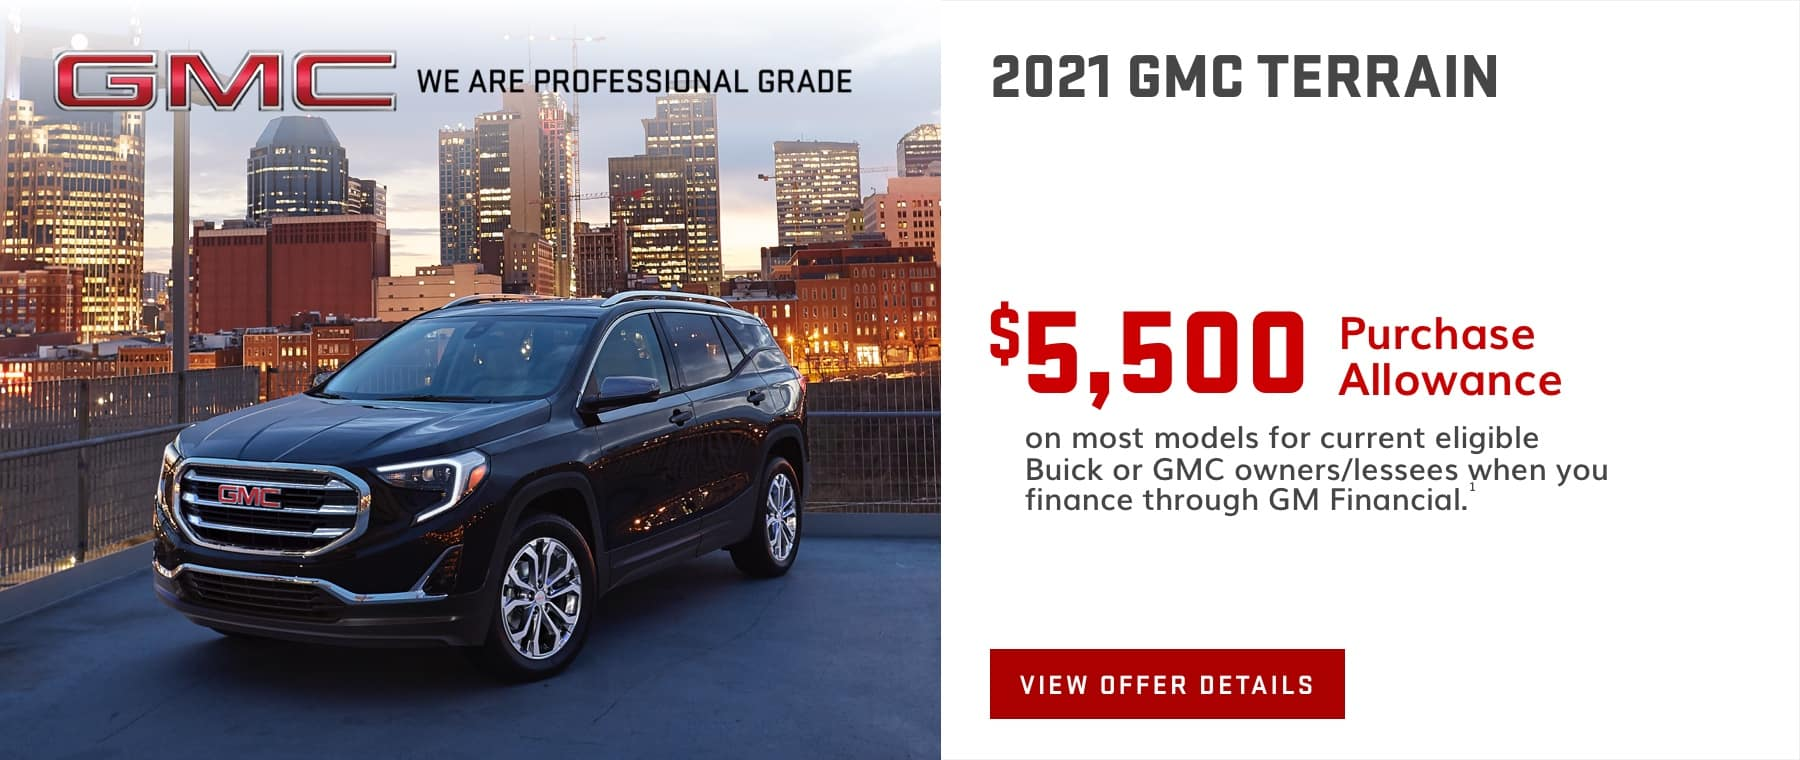 $5,500 Purchase Allowance on most models for current eligible Buick or GMC owners/lessees when you finance through GM Financial.1